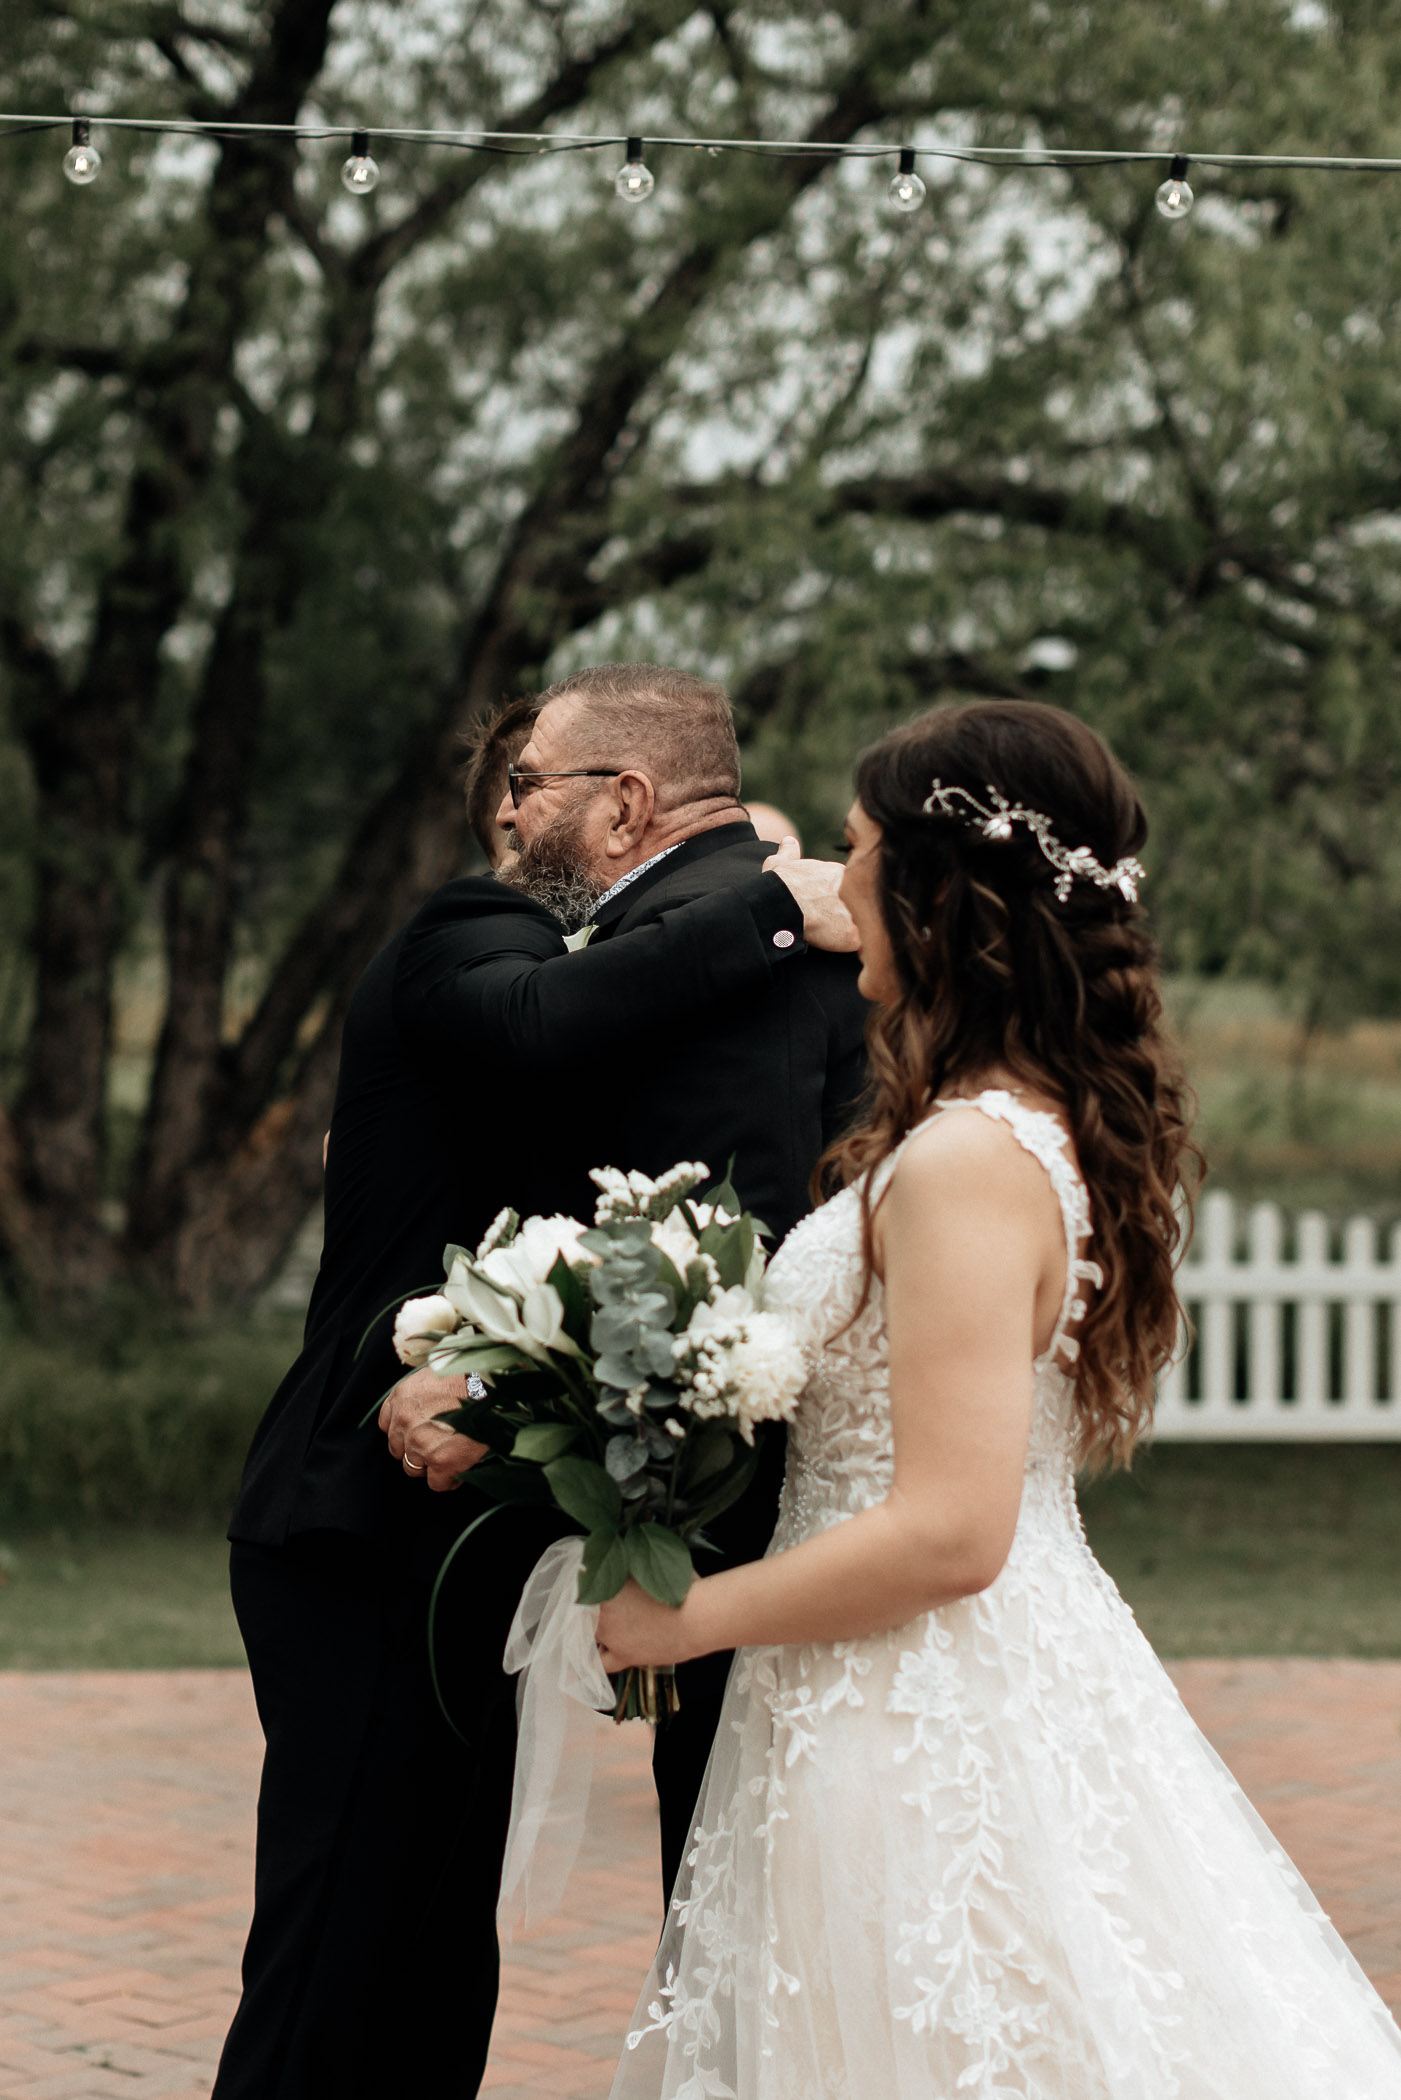 Brides dad hugging groom as he gives his daughter away on her wedding day